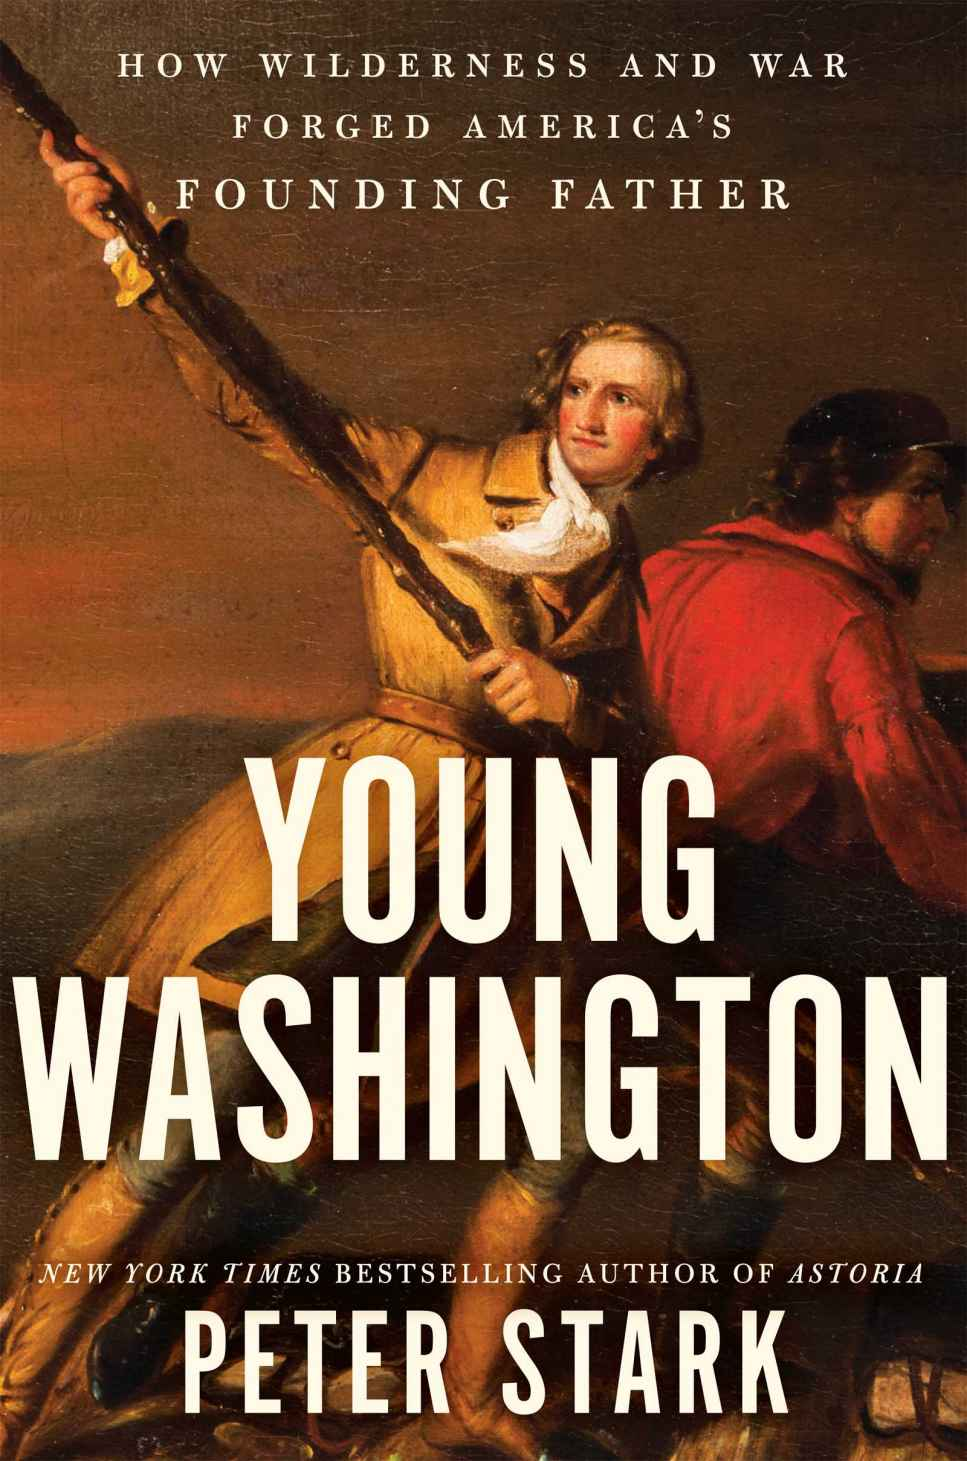 The Young George Washington, by Peter Stark